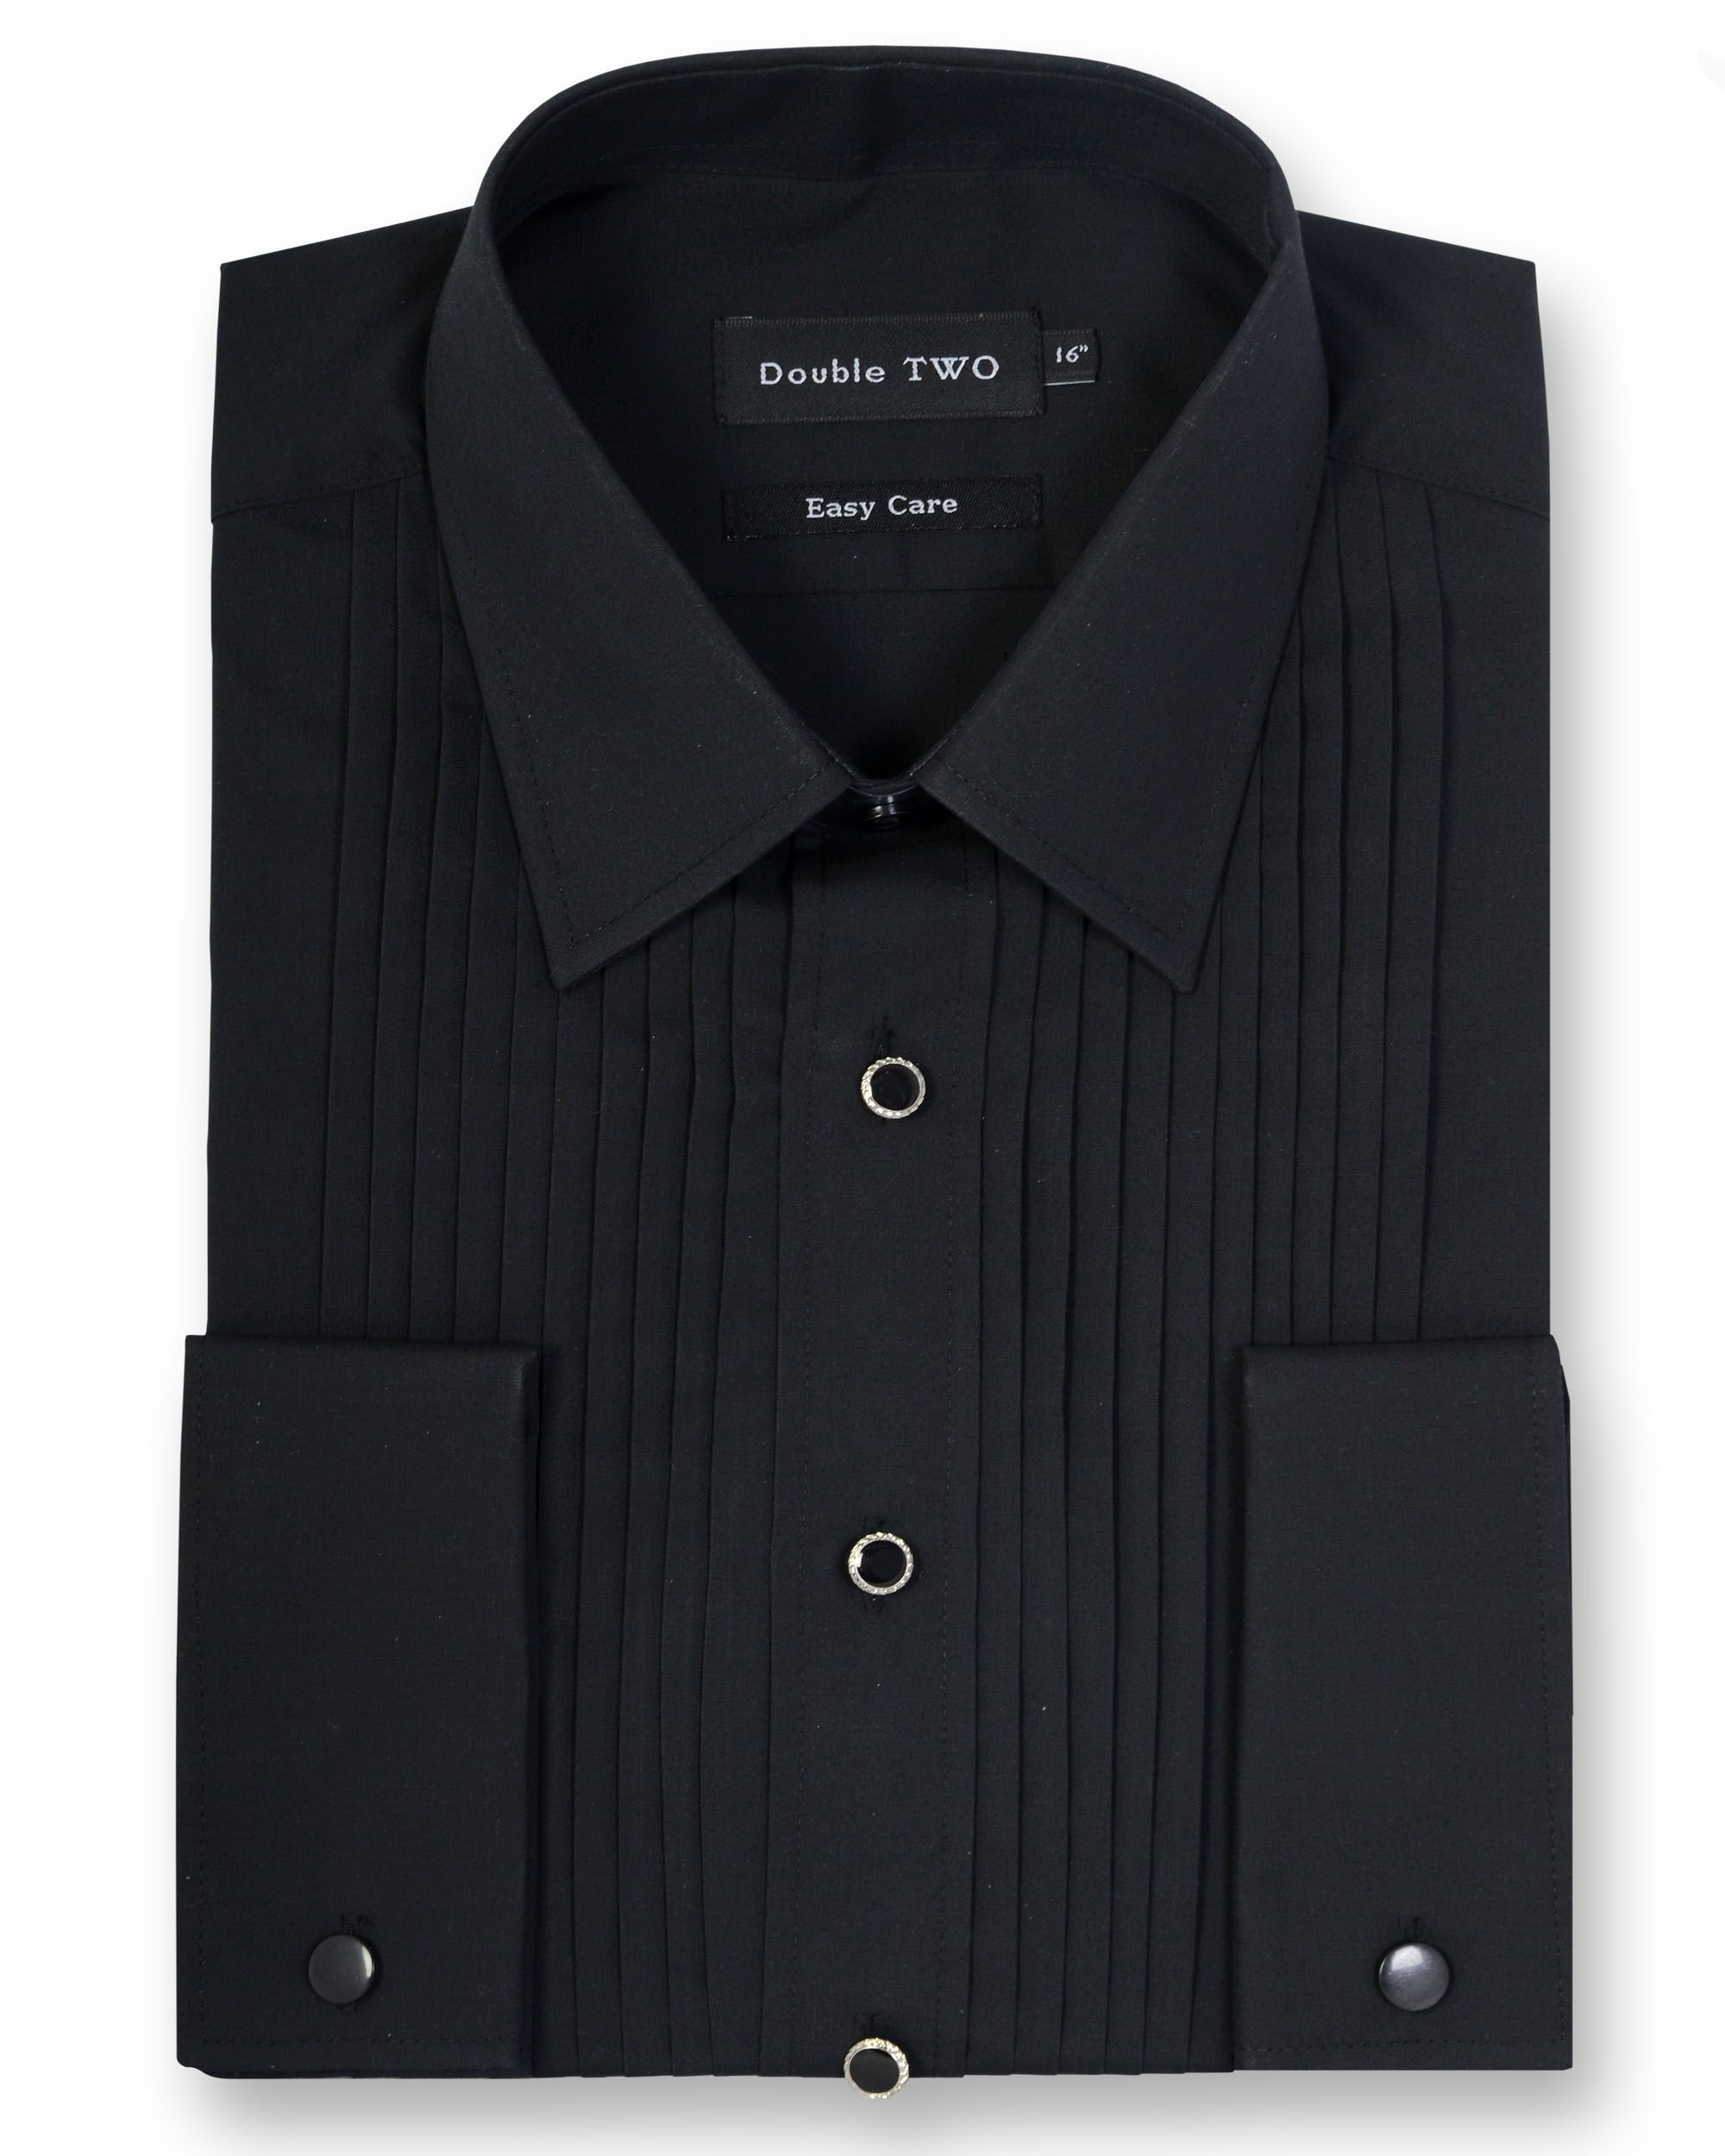 Mens Double TWO Classic Collar Stitch Pleat Dress Shirt Black